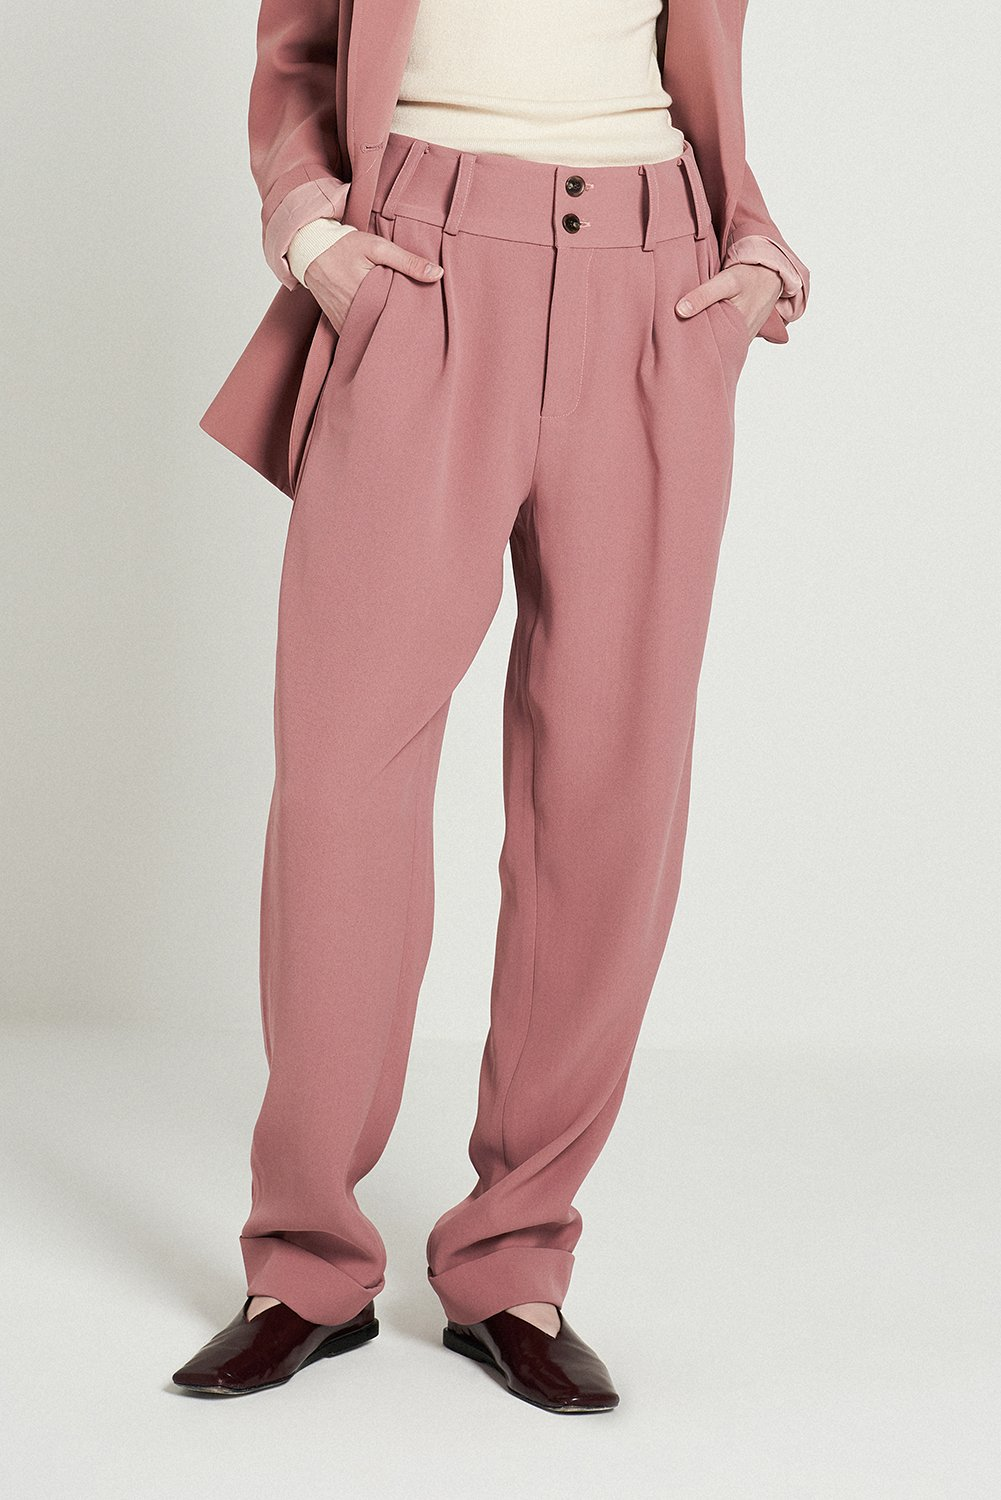 Suit Tapered Trouseres-Pink, $89.79